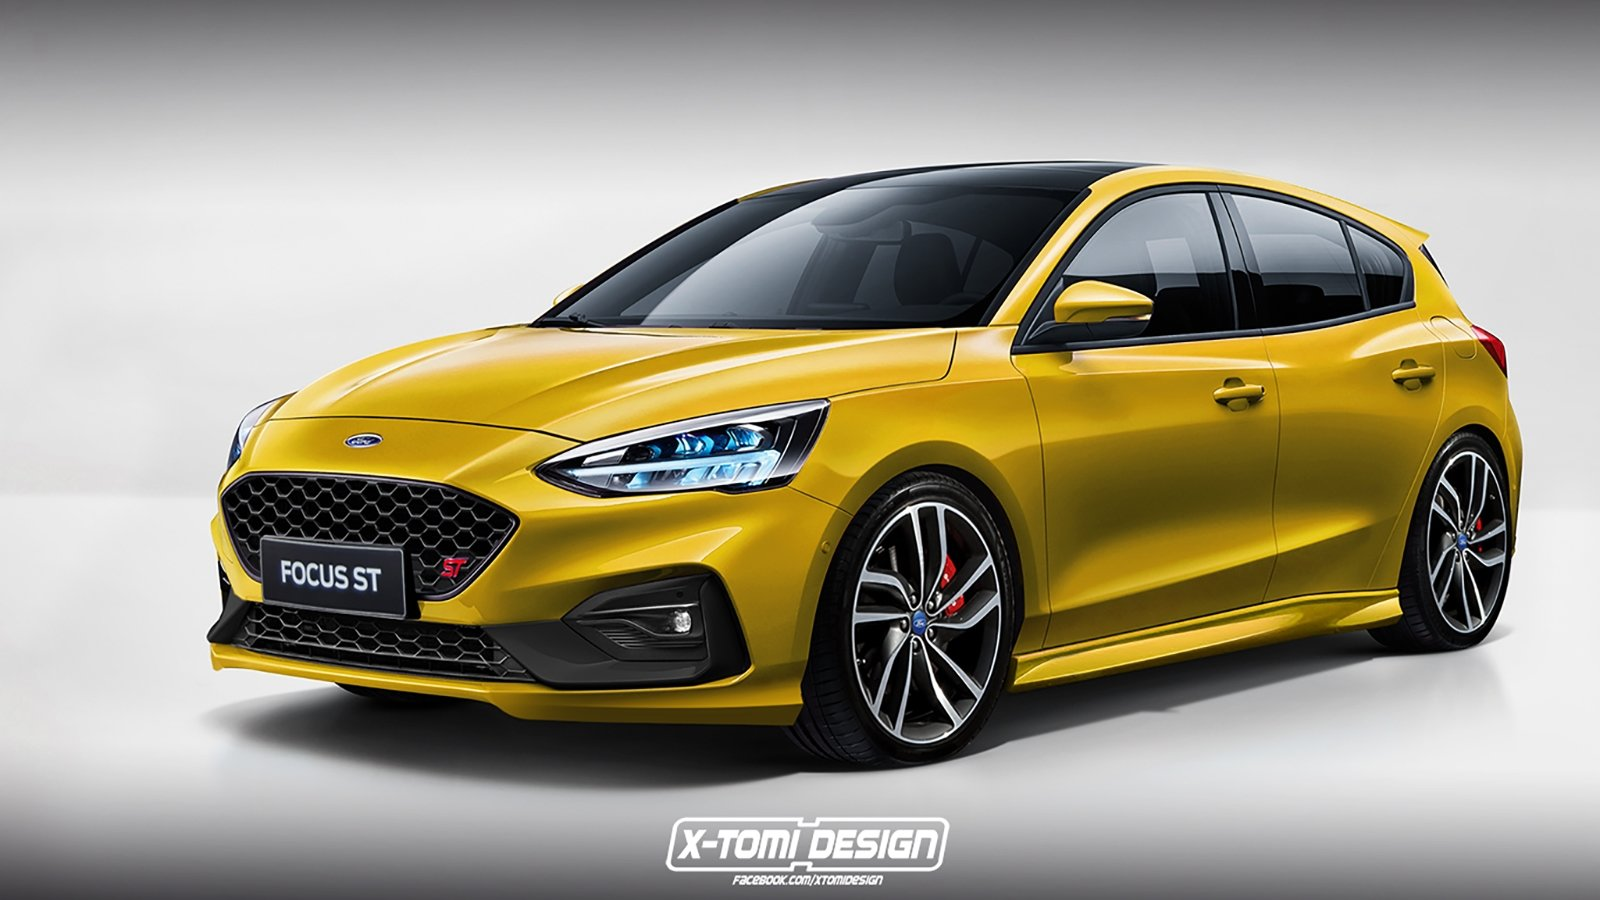 2019 - [Ford] - Focus ST Here-s-a-preview-of-_1600x0w